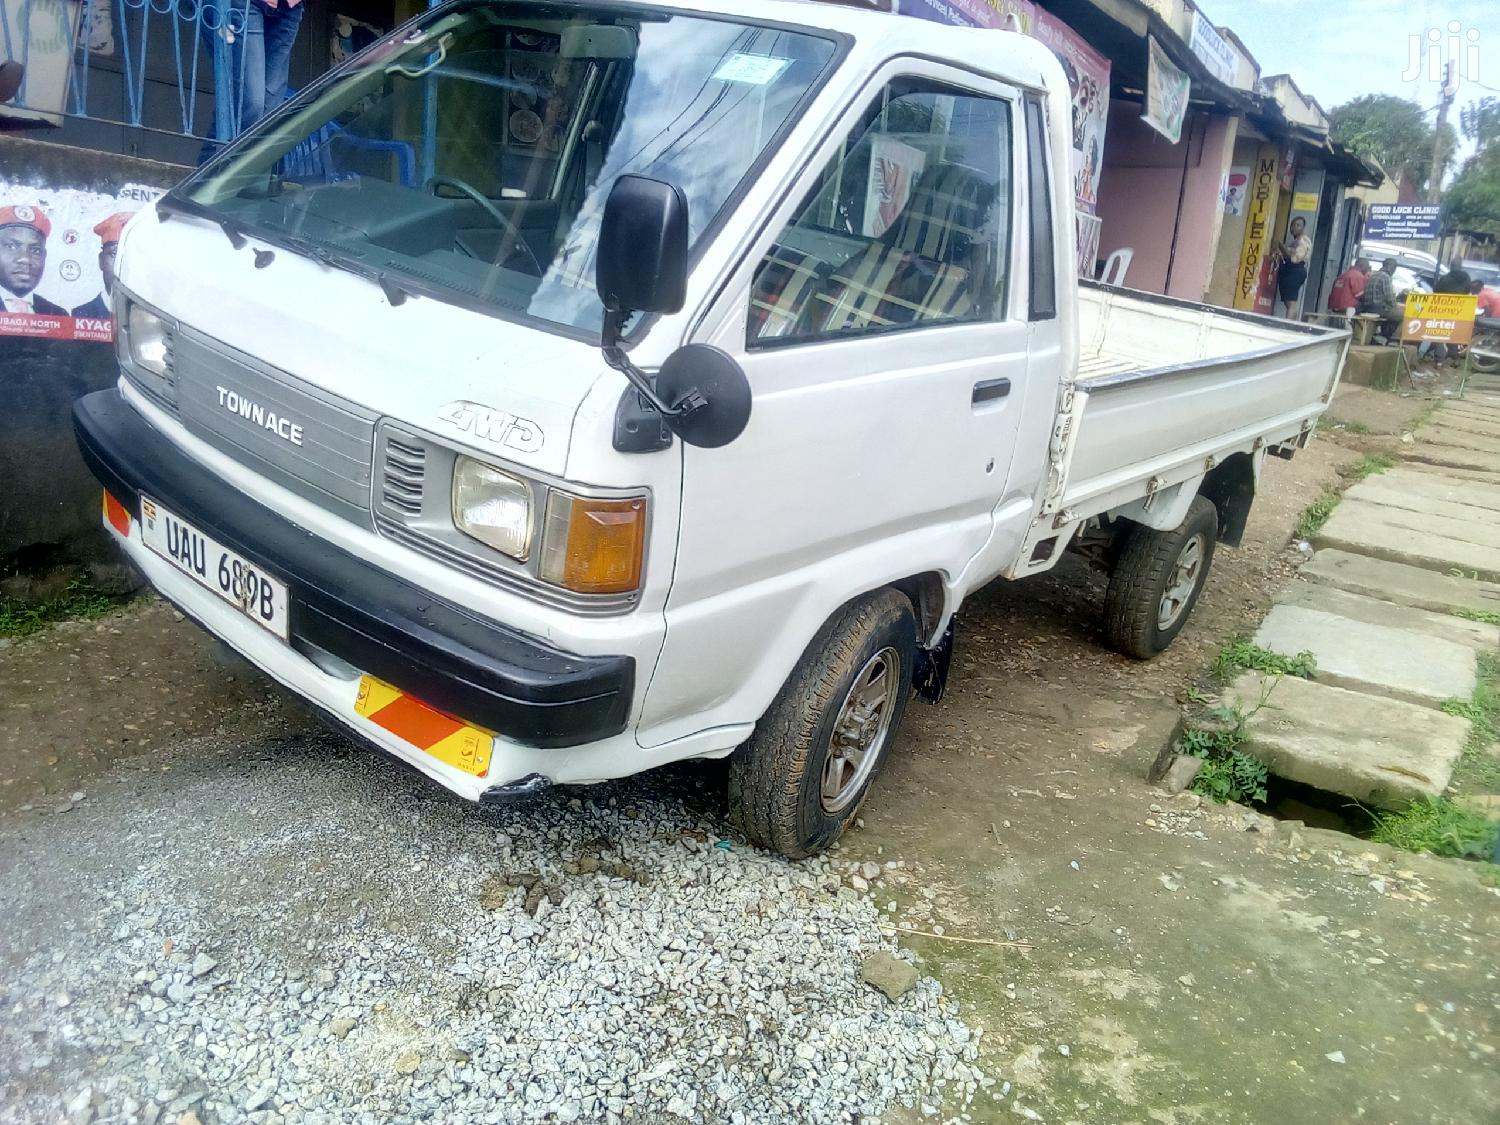 TOWNACE. In Good Condition